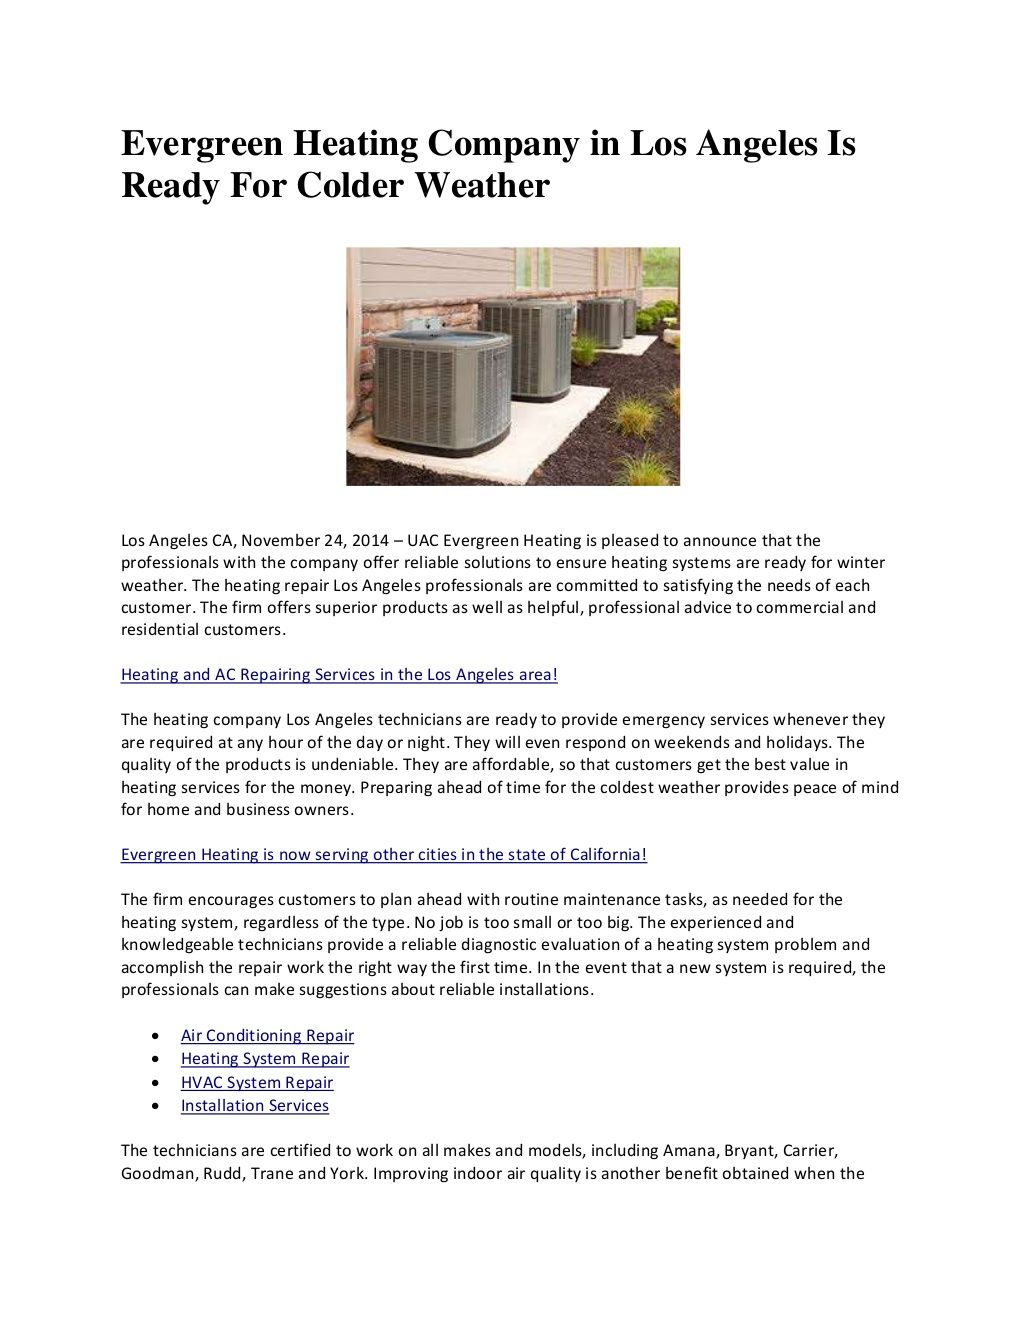 Evergreen Heating By Victor Harper Via Slideshare Heating Repair